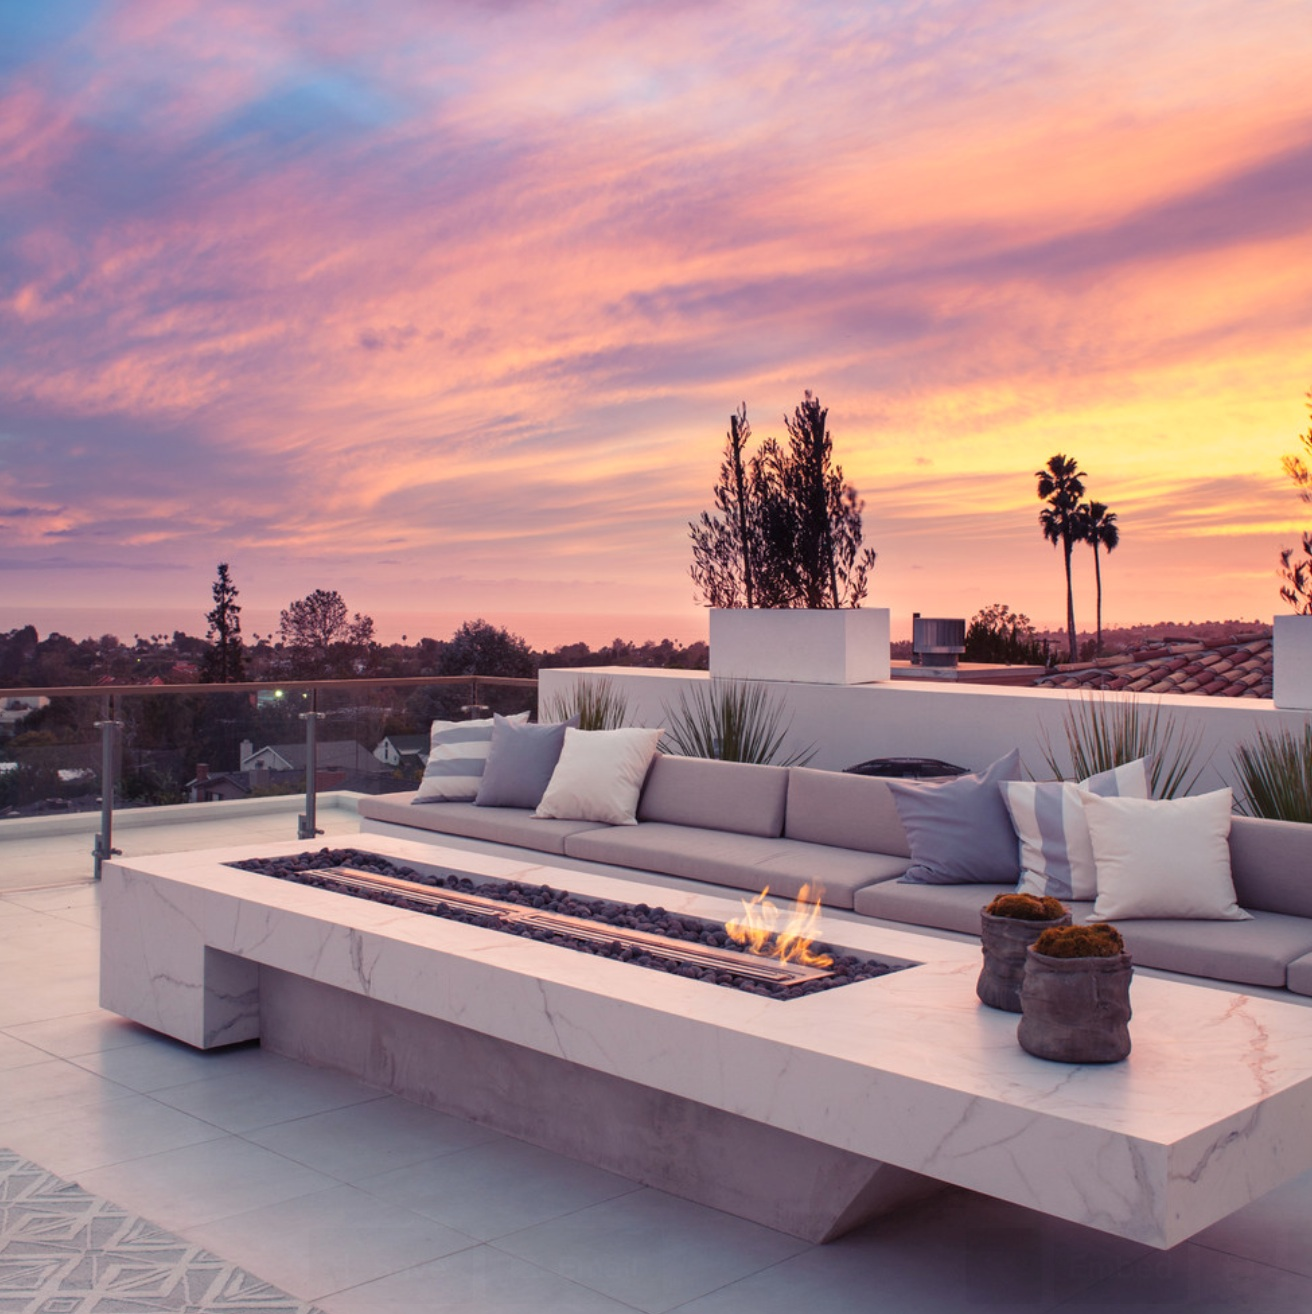 50 Best Patio Ideas For Design Inspiration for 2020 on Patio Top Ideas id=56138